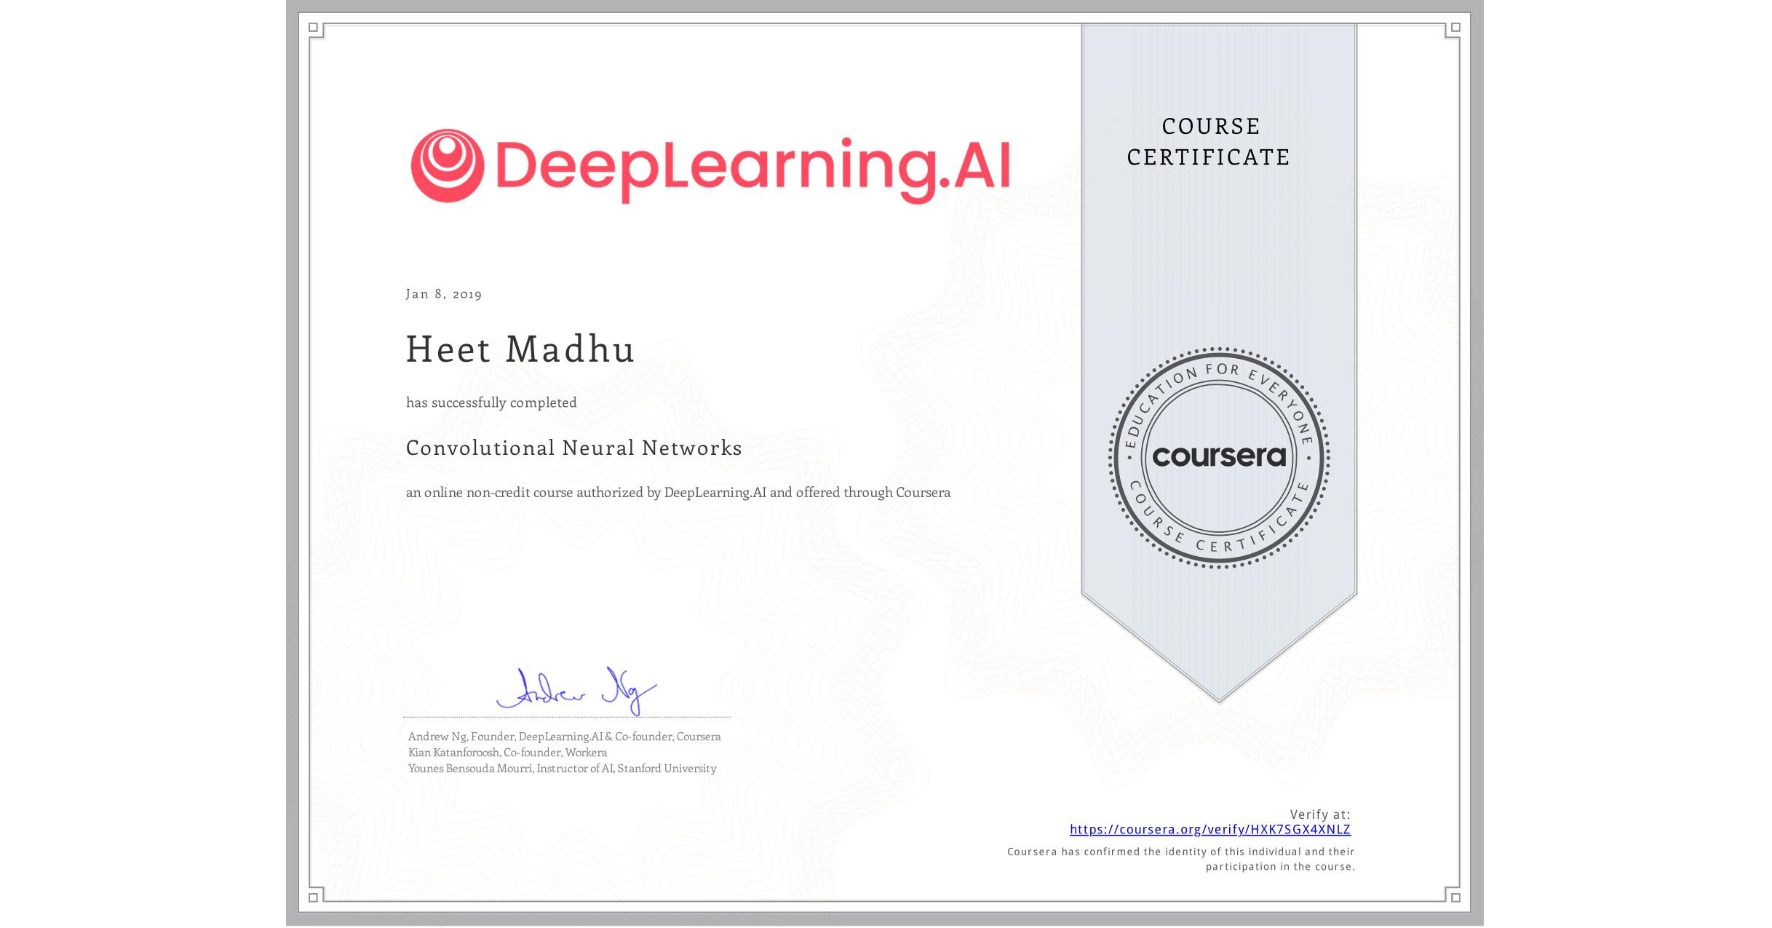 View certificate for Heet Madhu, Convolutional Neural Networks, an online non-credit course authorized by DeepLearning.AI and offered through Coursera